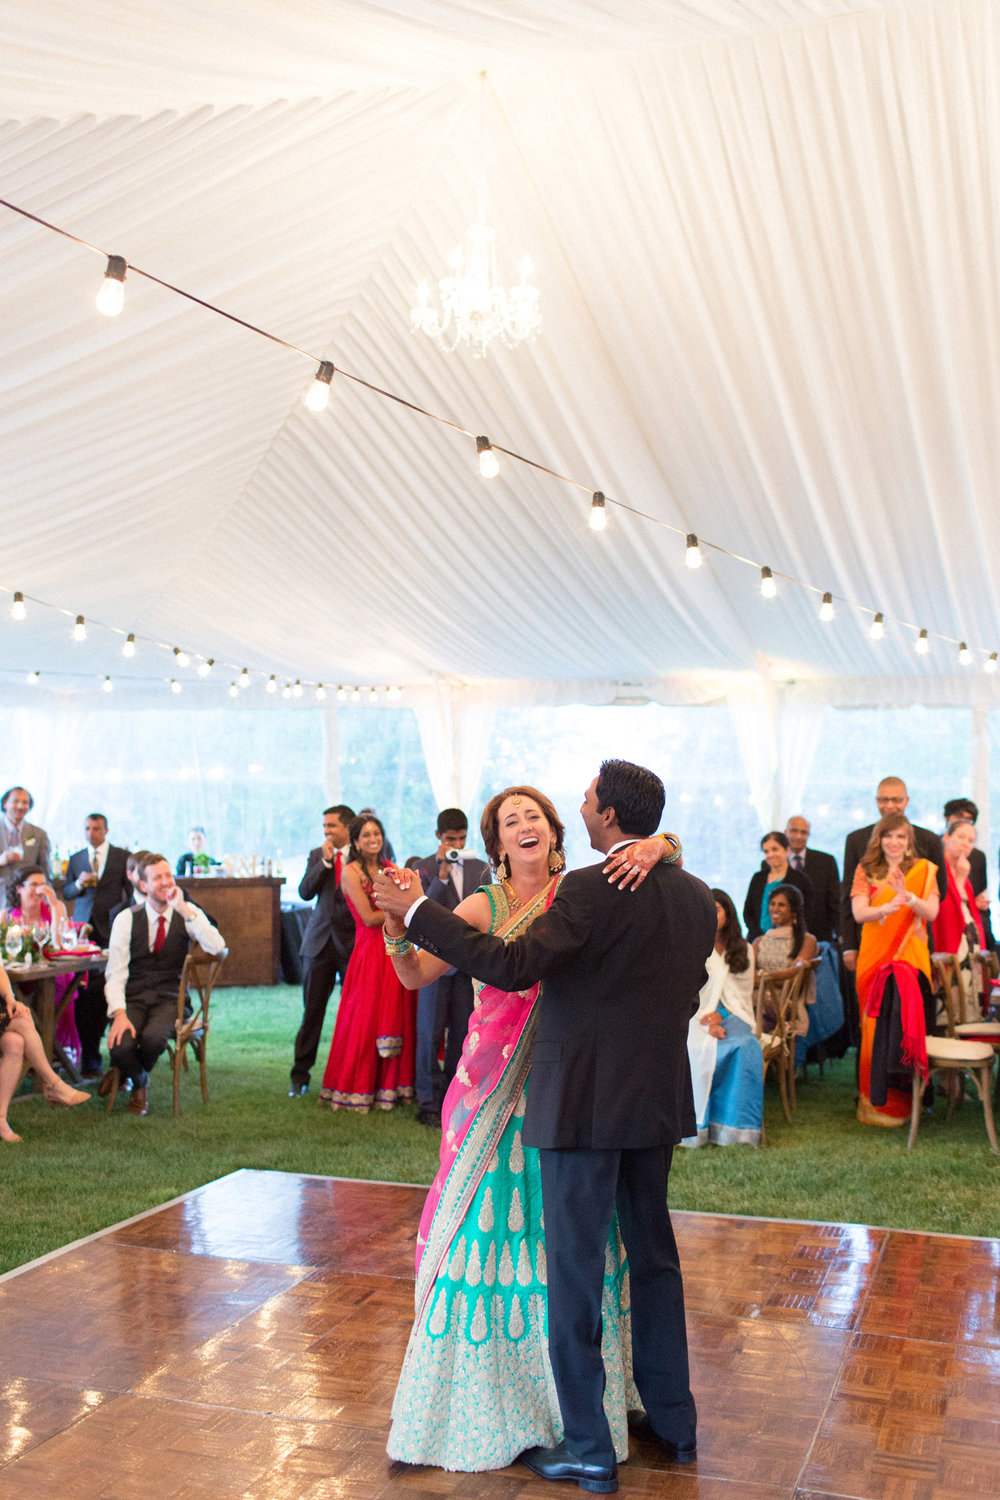 thevondys.com | Saddlerock Ranch Photography | Los Angeles Indian Wedding Photographer | The Vondys